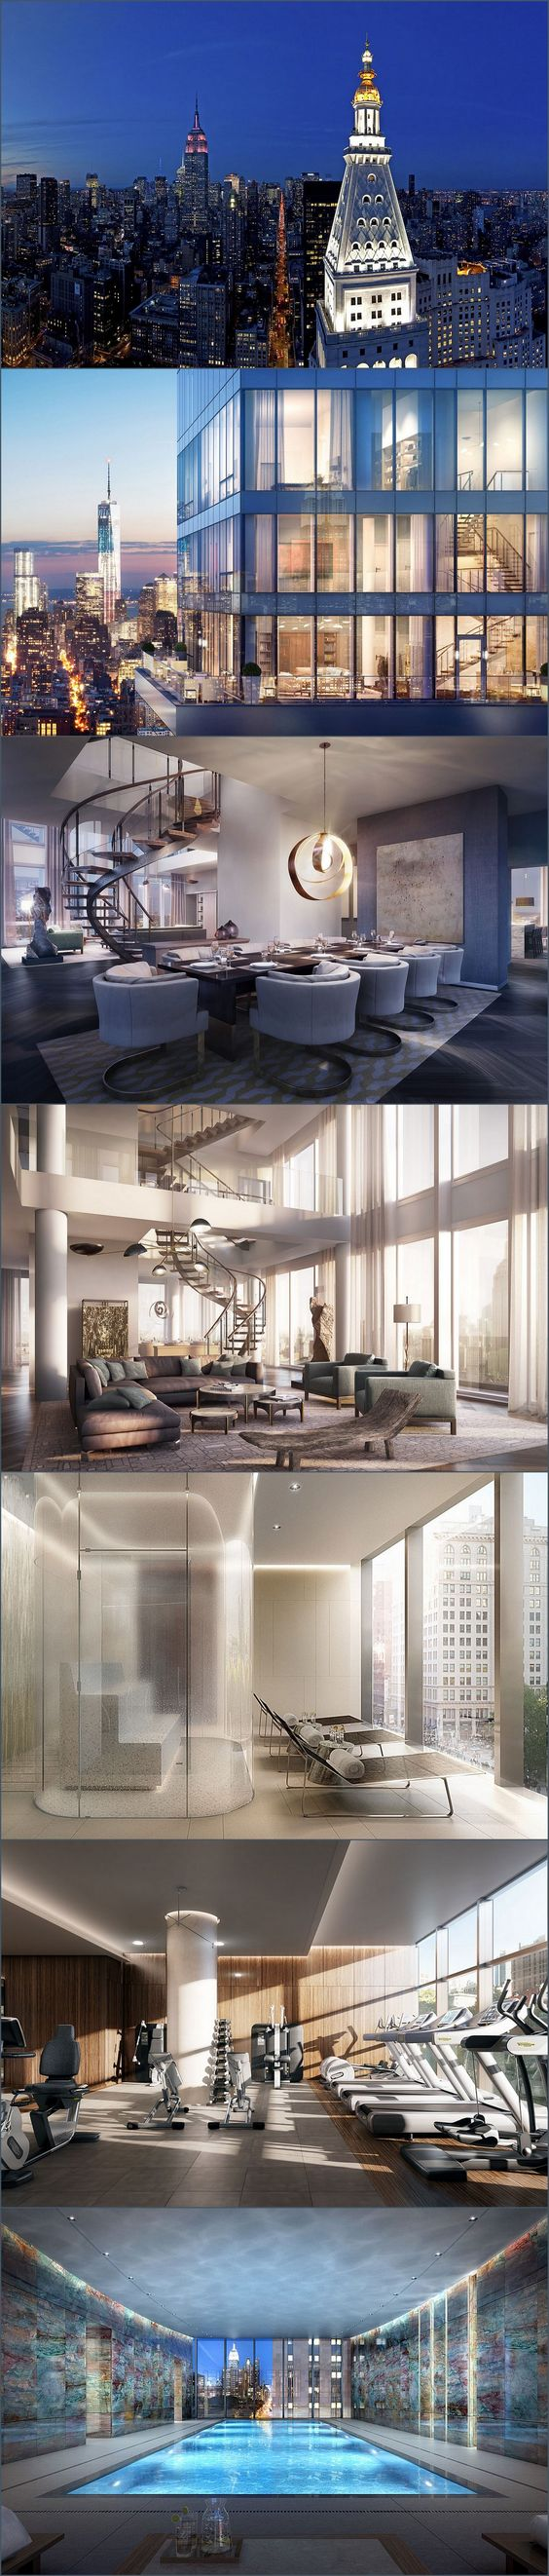 Rupert Mudroch's New - NY Penthouse - Dude..